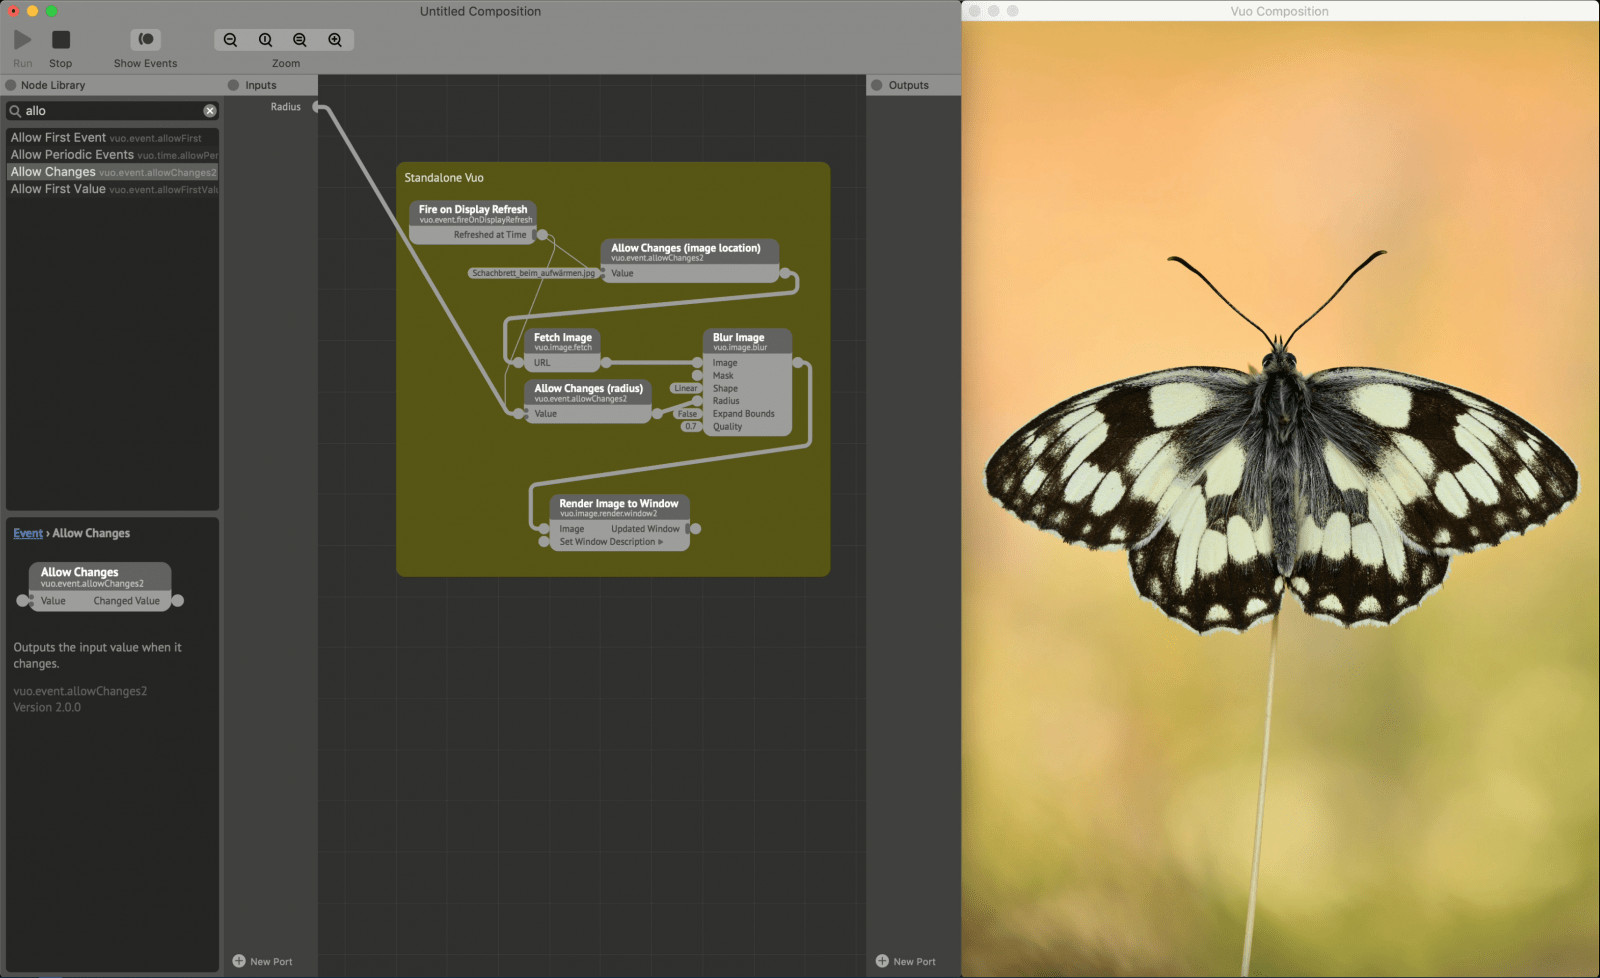 Composition with Allow Changes nodes inserted in front of Fetch Image and Blur Image